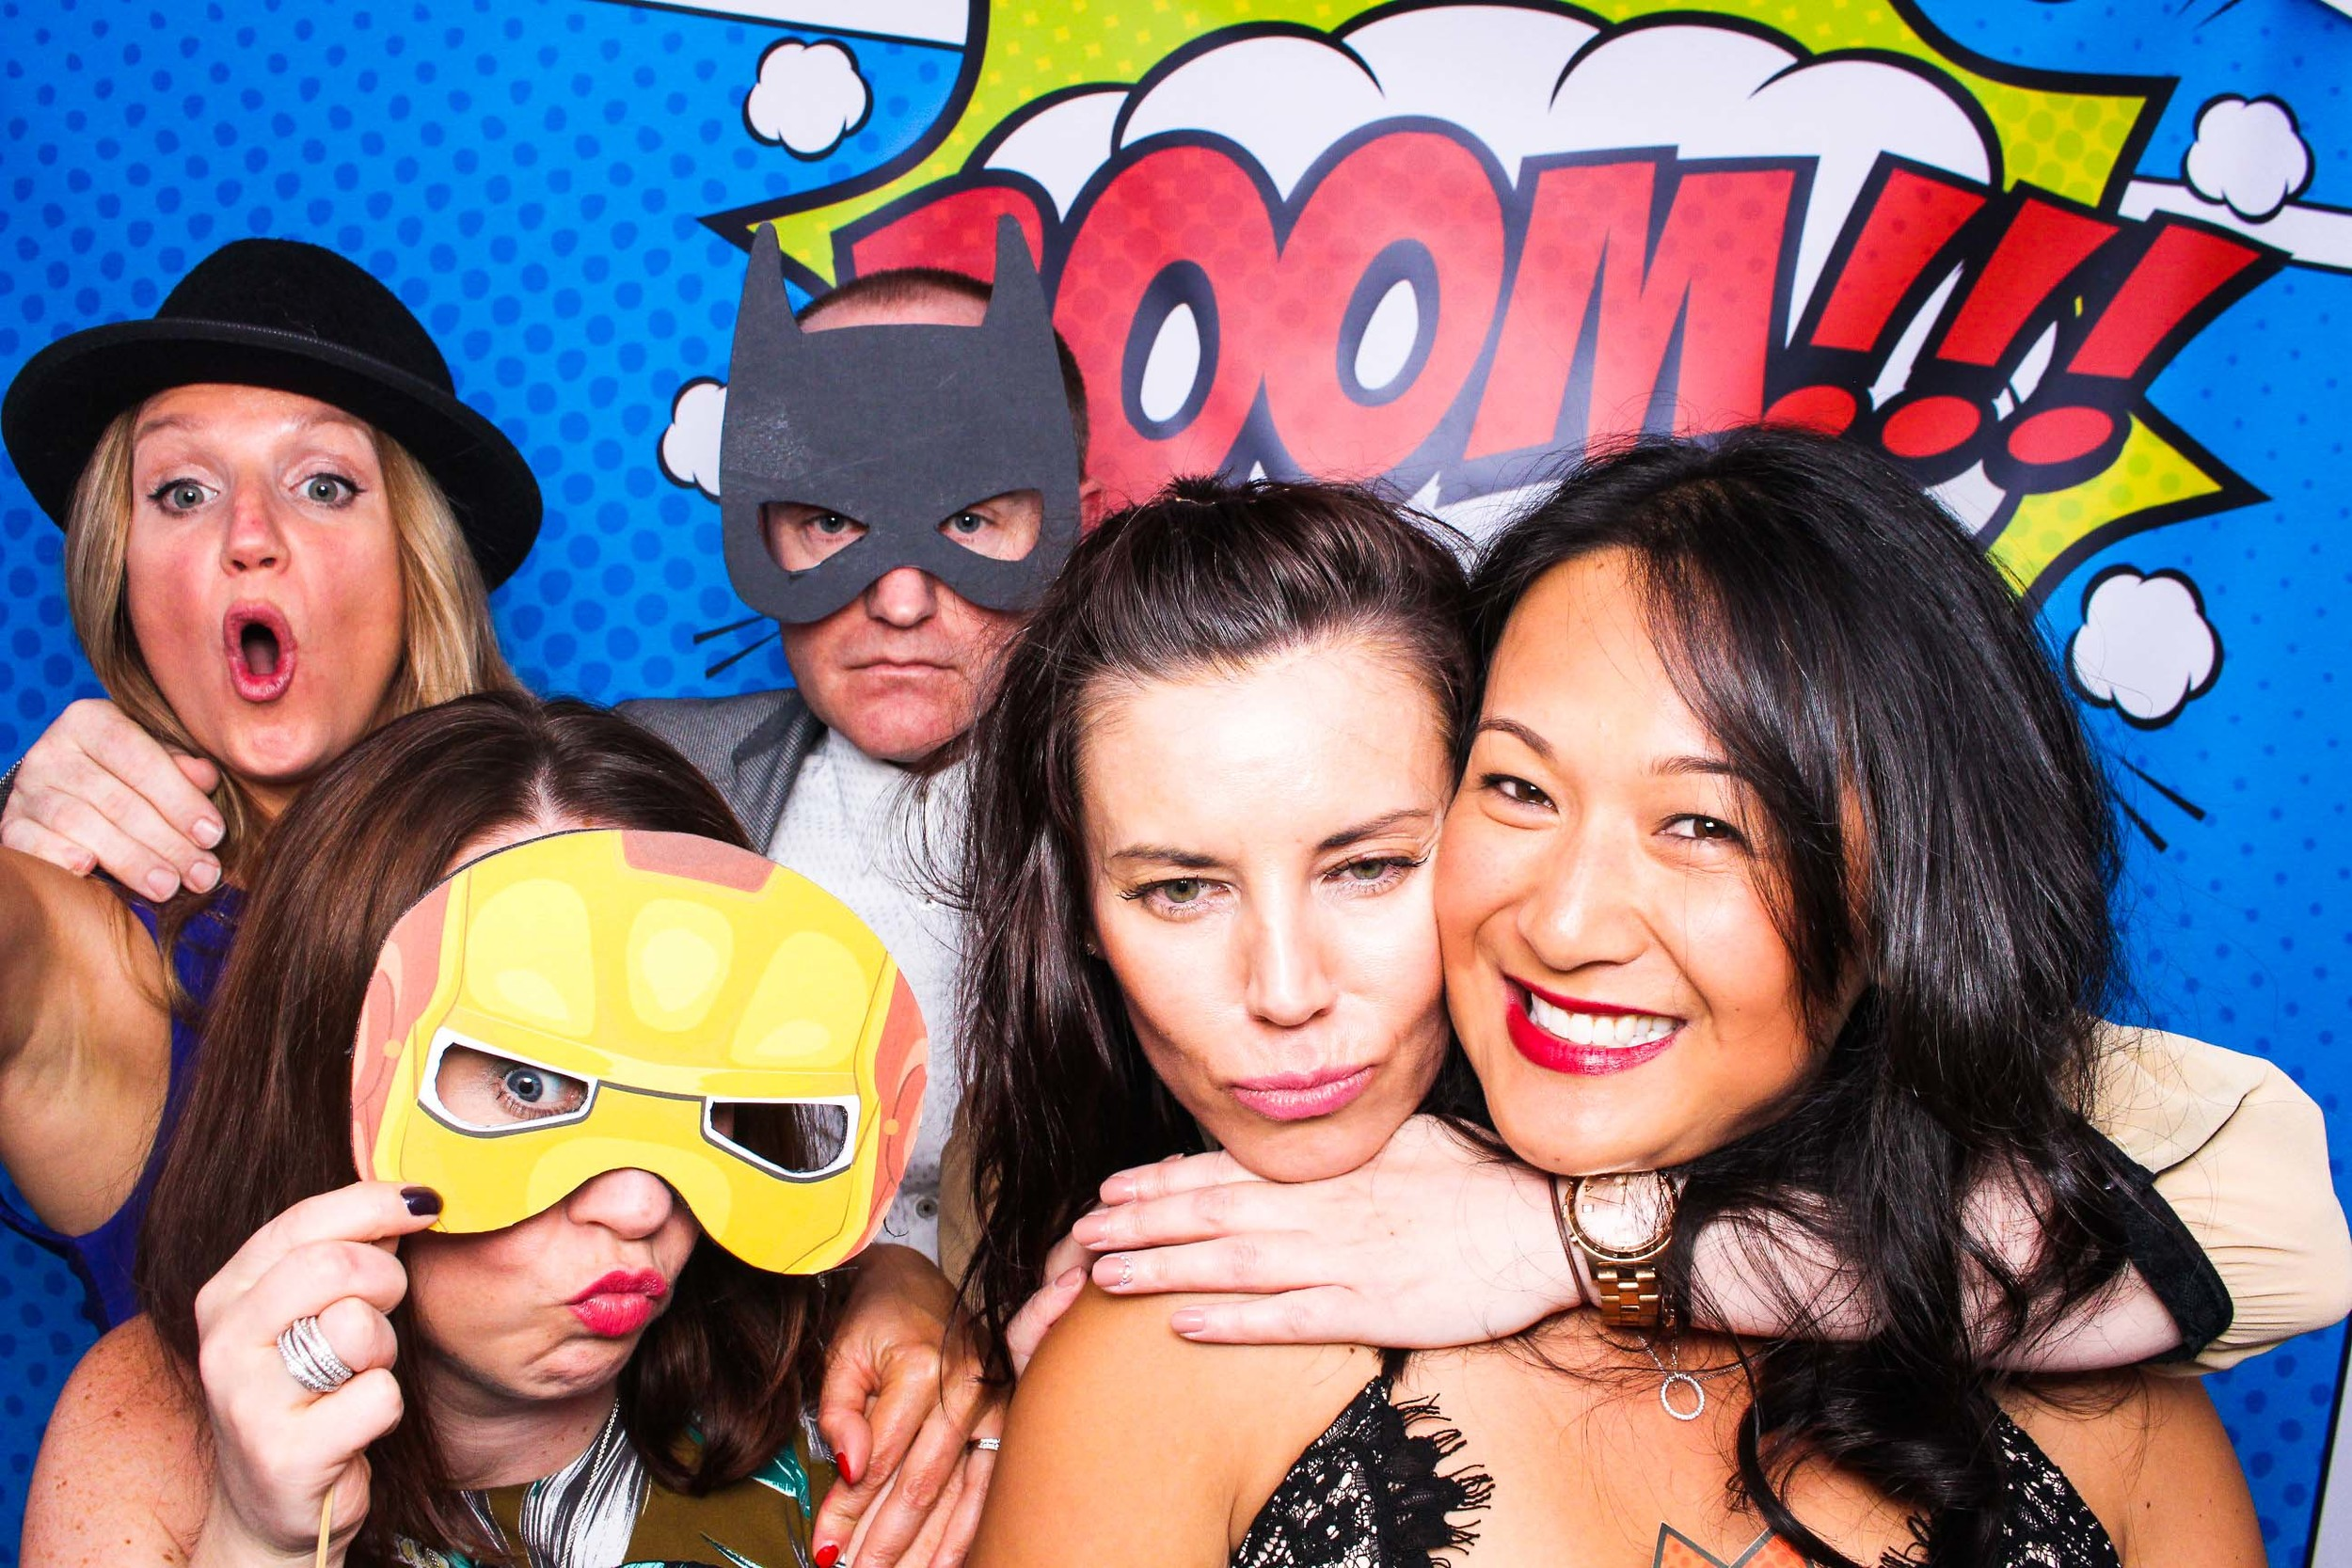 Fotoauto Photo Booth Hire - Shop Direct-169.jpg